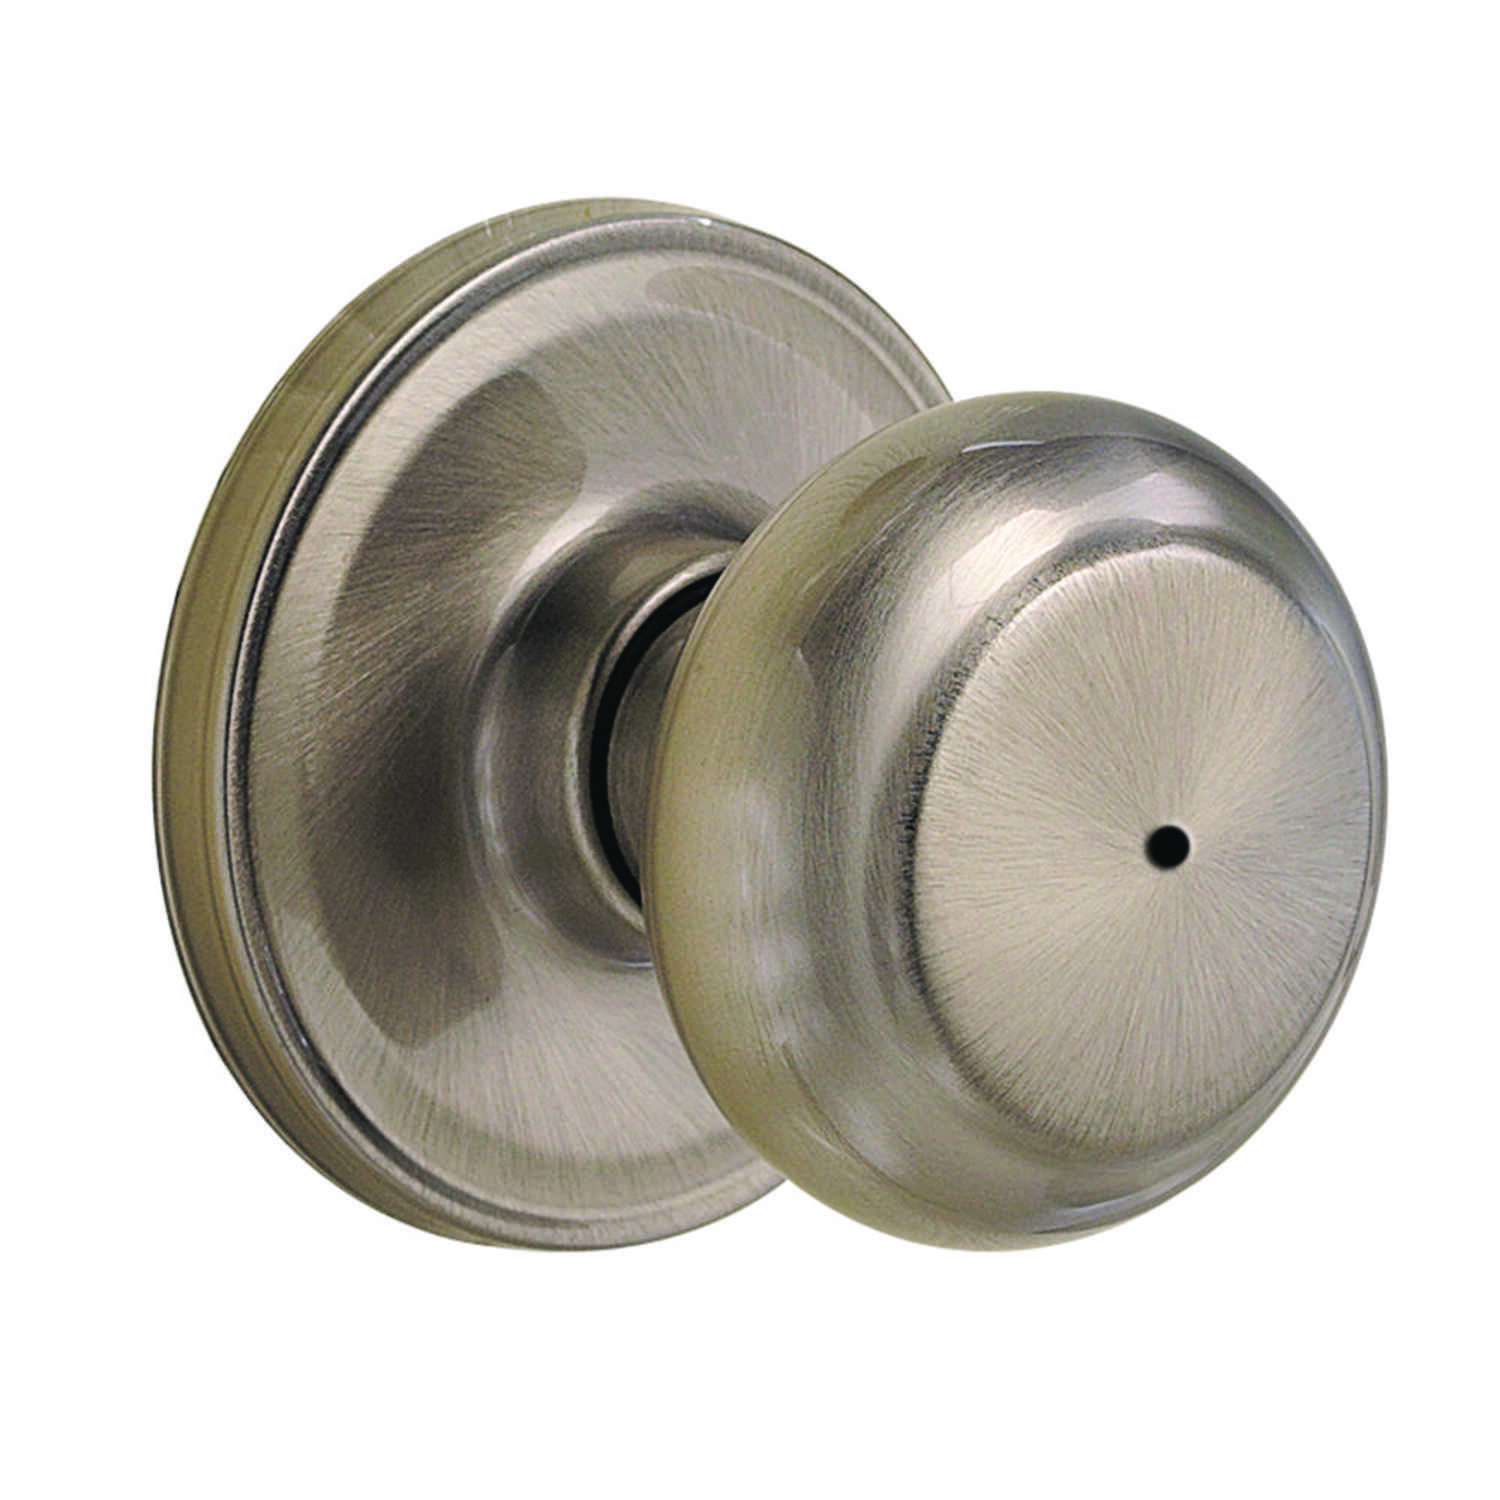 Weiser  Troy  Satin Nickel  Steel  Privacy Lockset  ANSI/BHMA Grade 2  1-3/4 in.